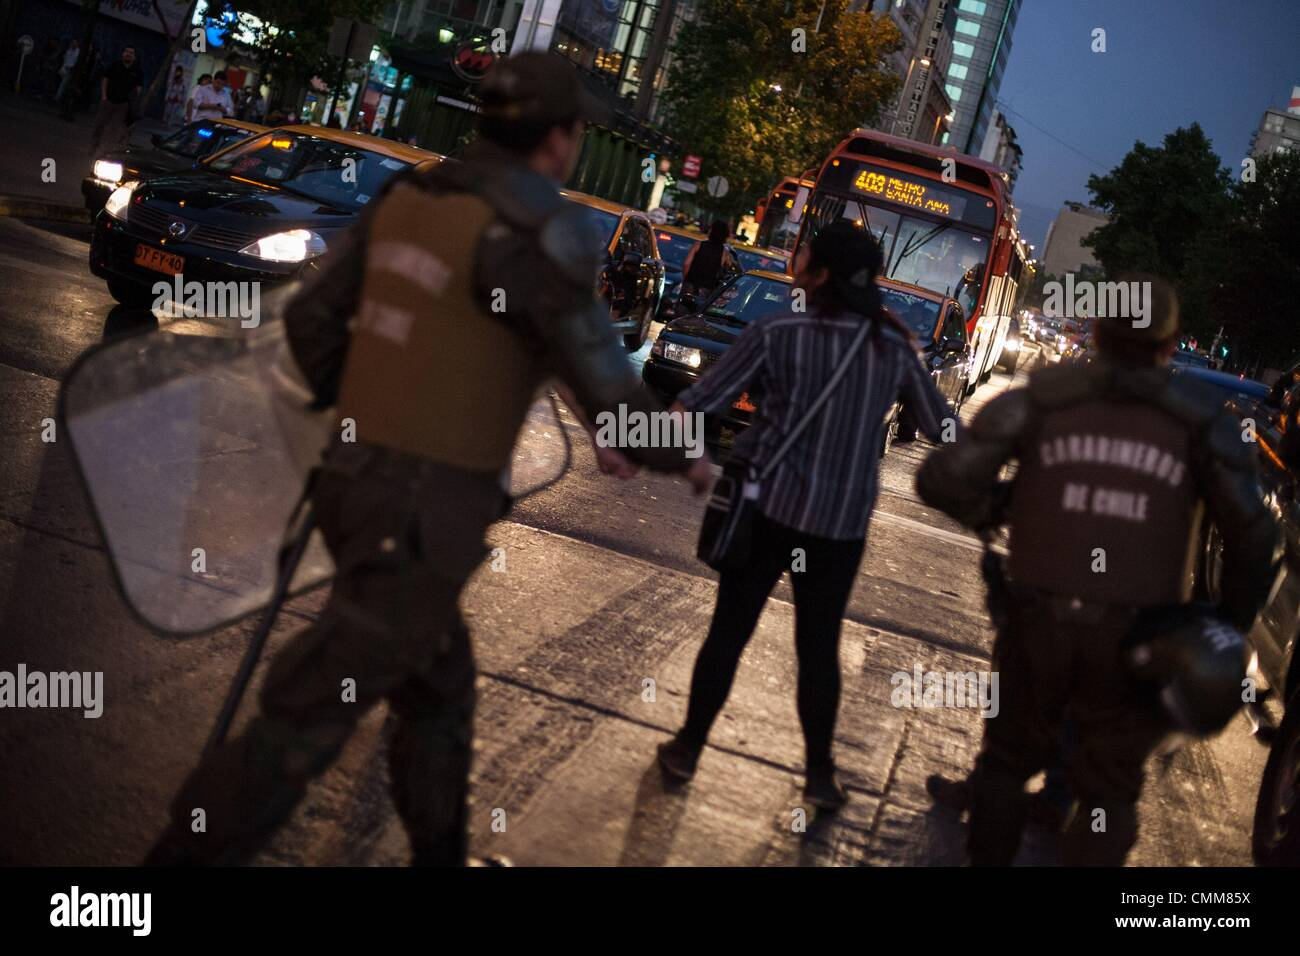 Santiago Del Chile, Chile. 4th Nov, 2013. A group of protesters block Santiago's main street Alameda and is detained Stock Photo